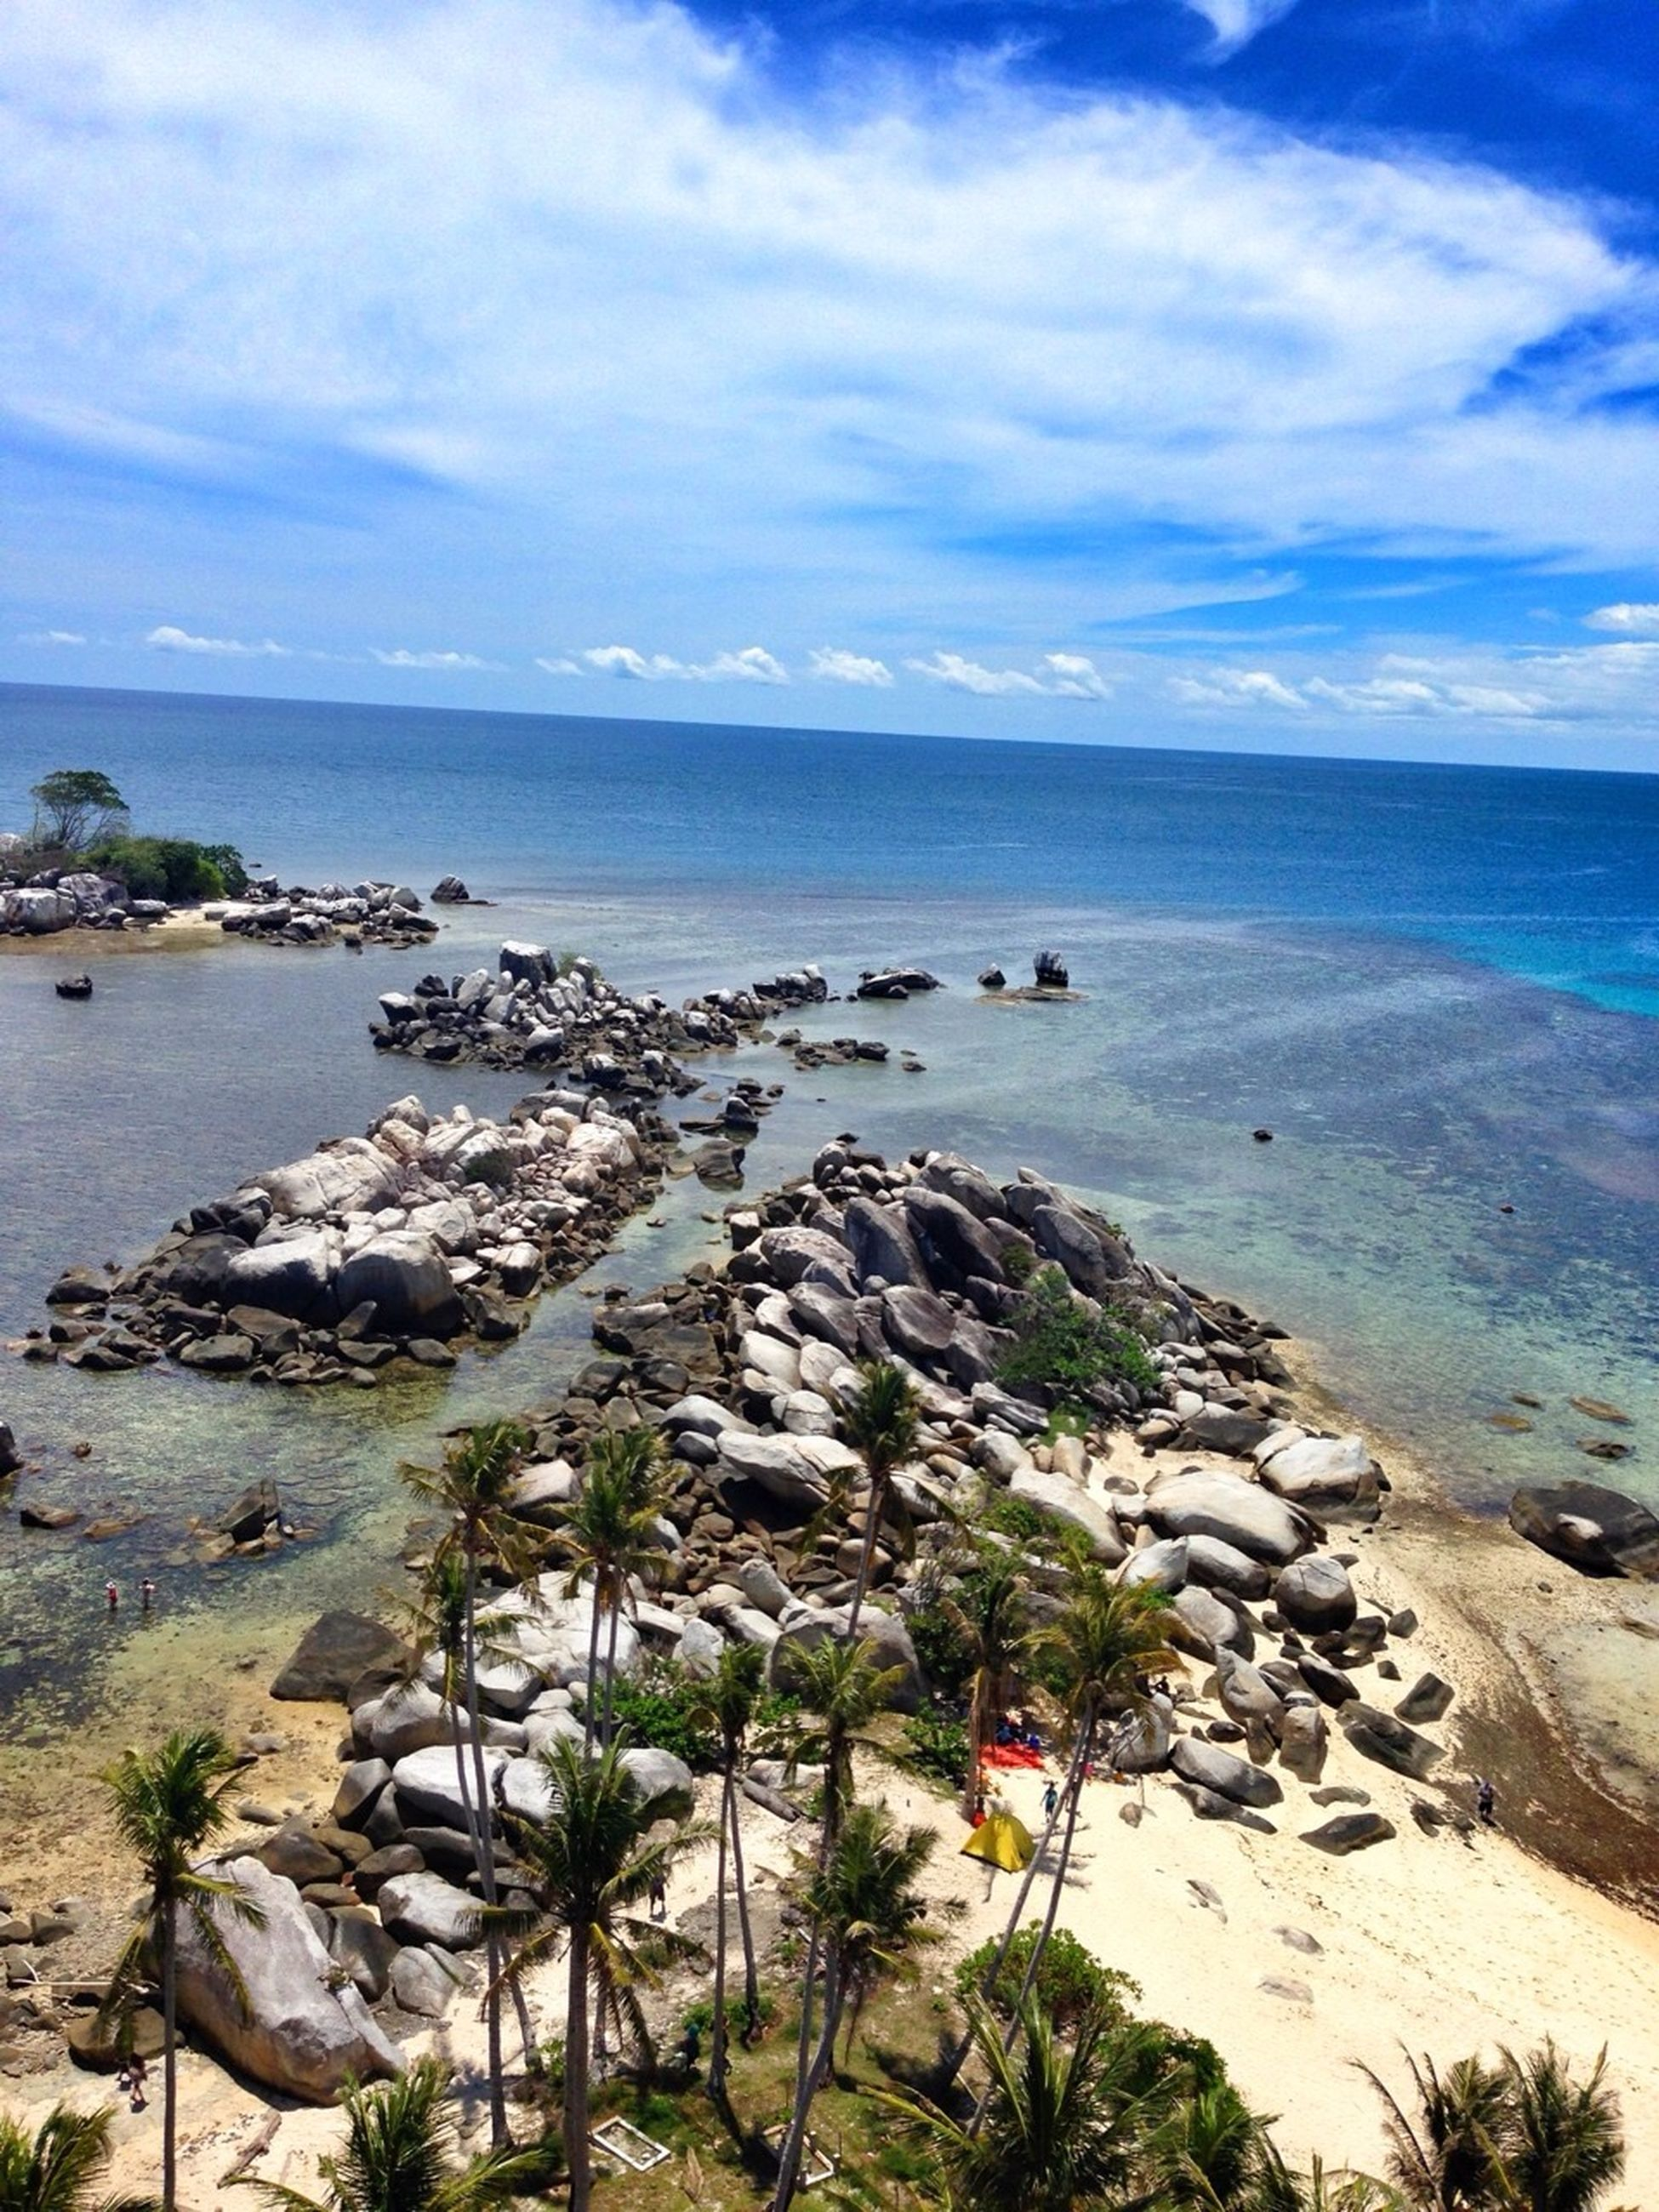 sea, water, sky, horizon over water, beach, tranquil scene, tranquility, scenics, cloud - sky, shore, rock - object, beauty in nature, nature, cloud, rock formation, coastline, cloudy, rock, idyllic, sand